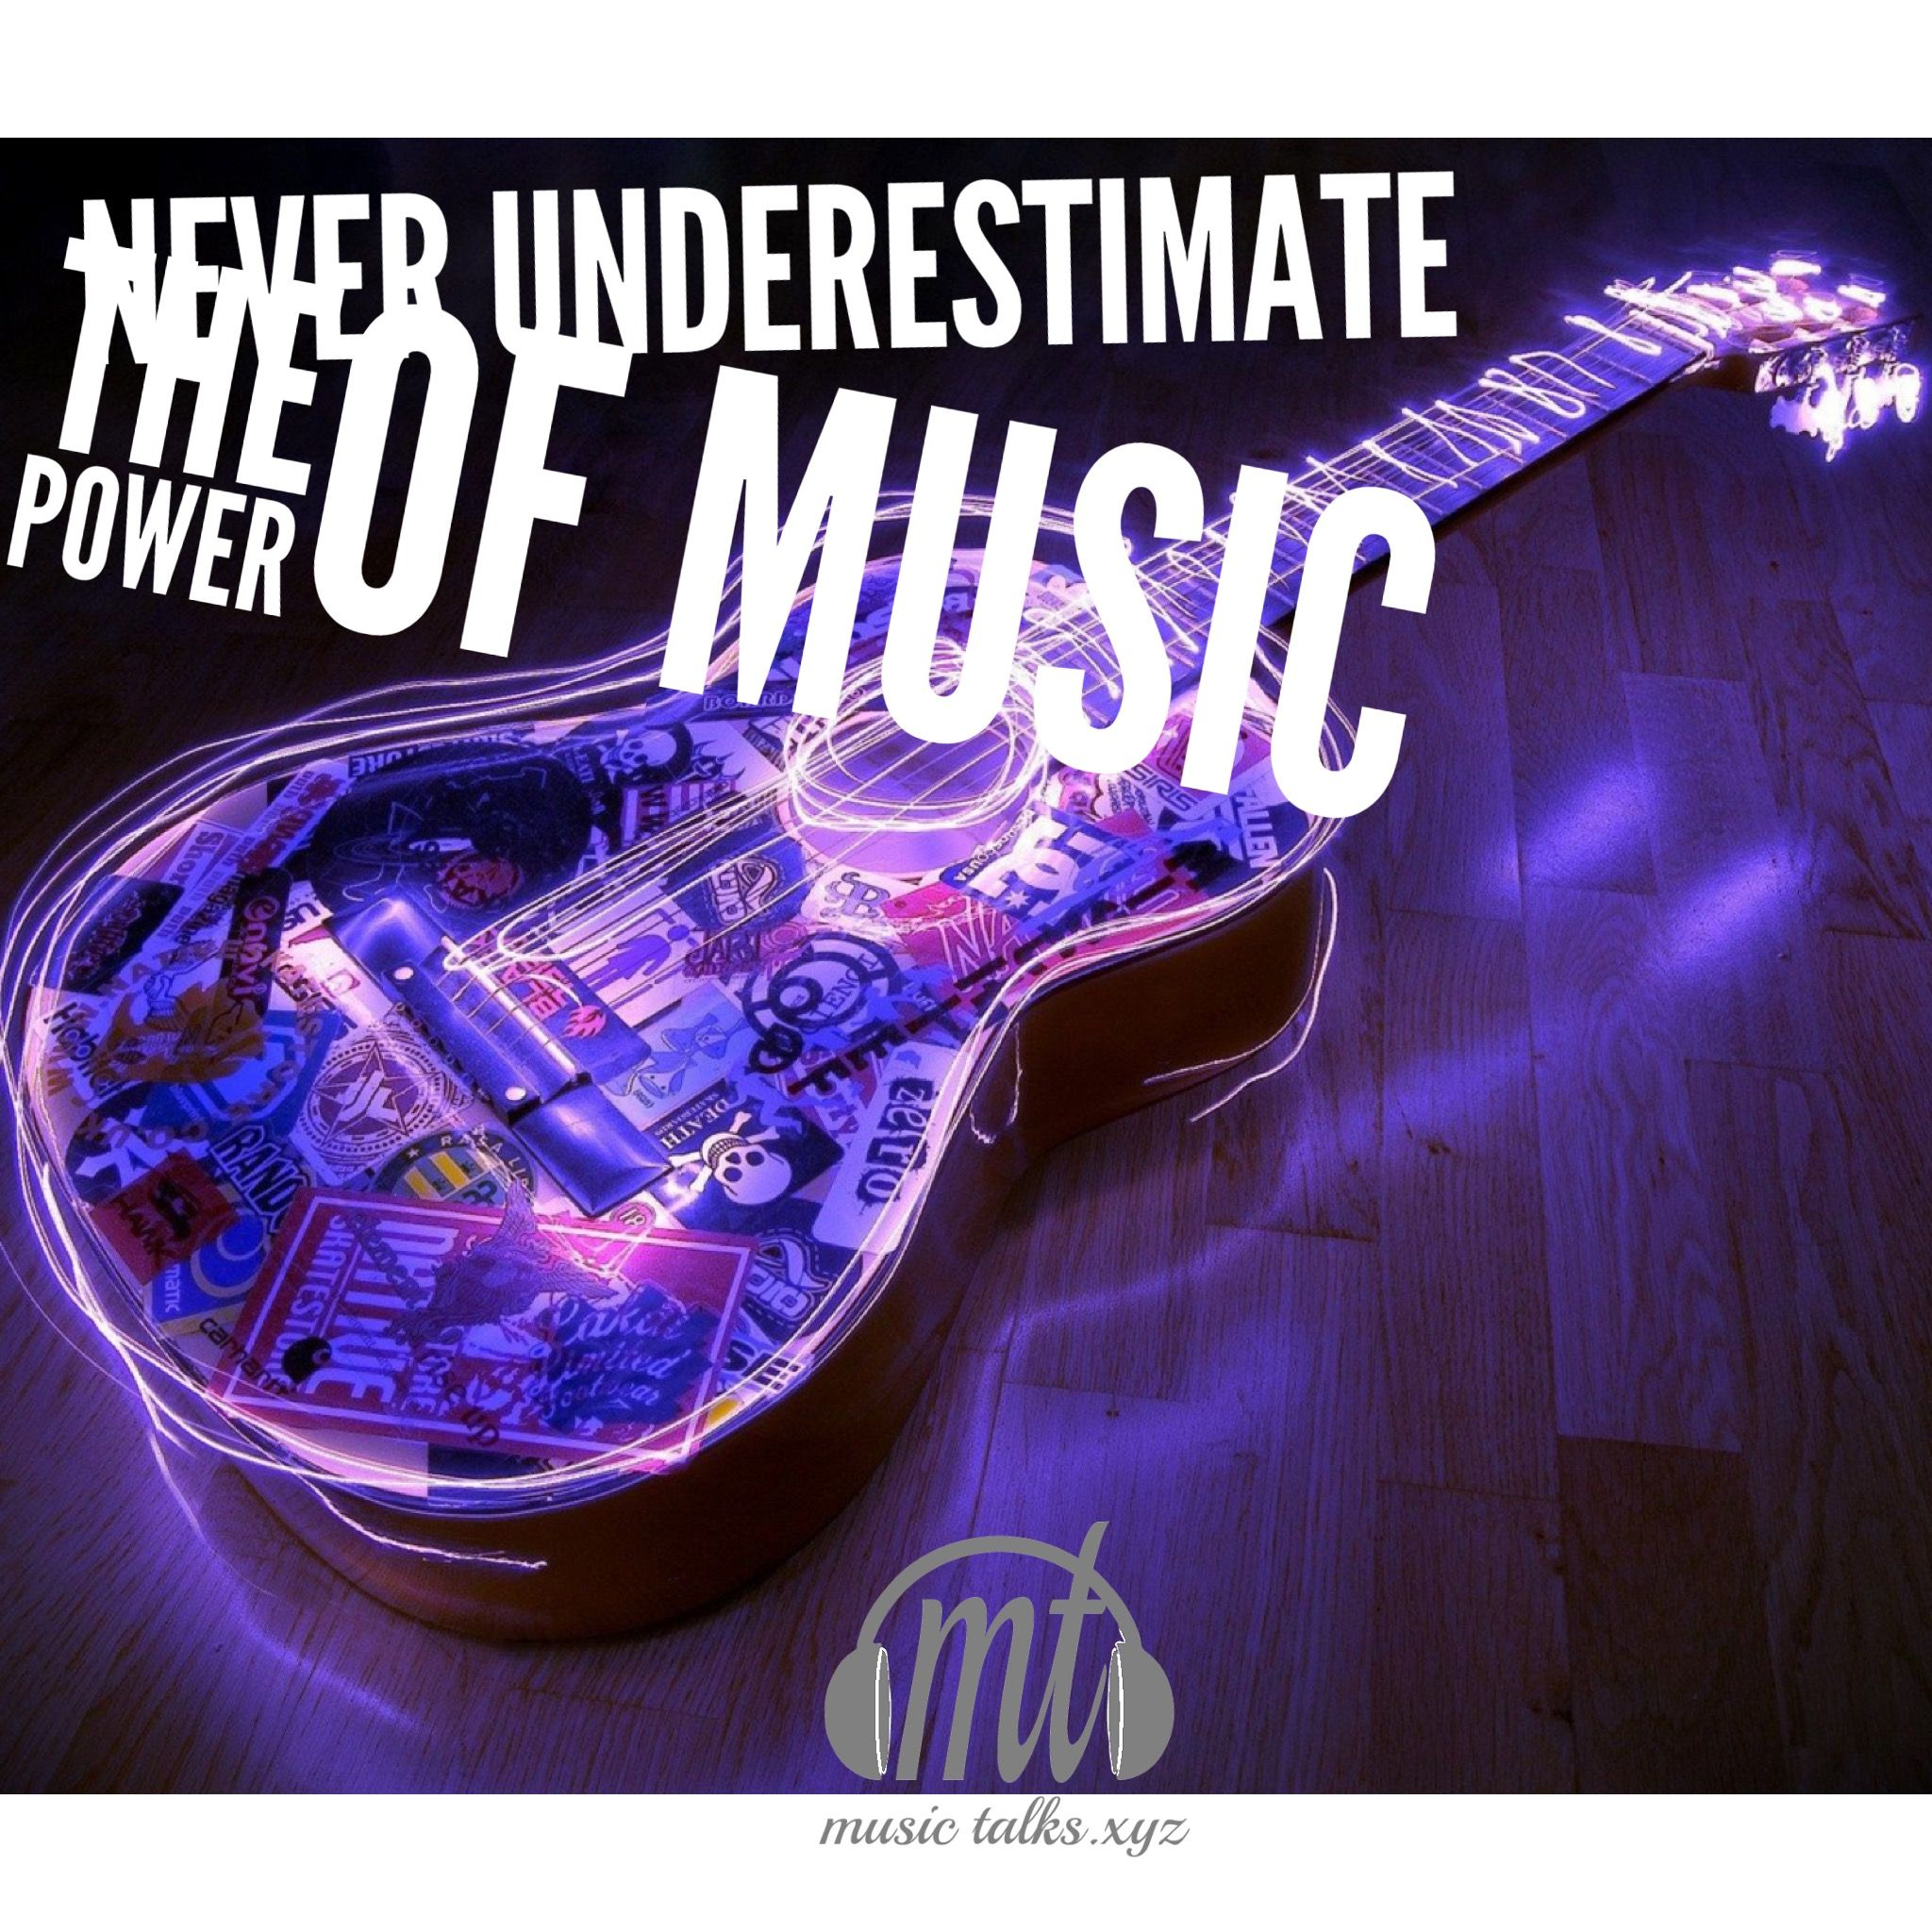 Never underestimate the power of music